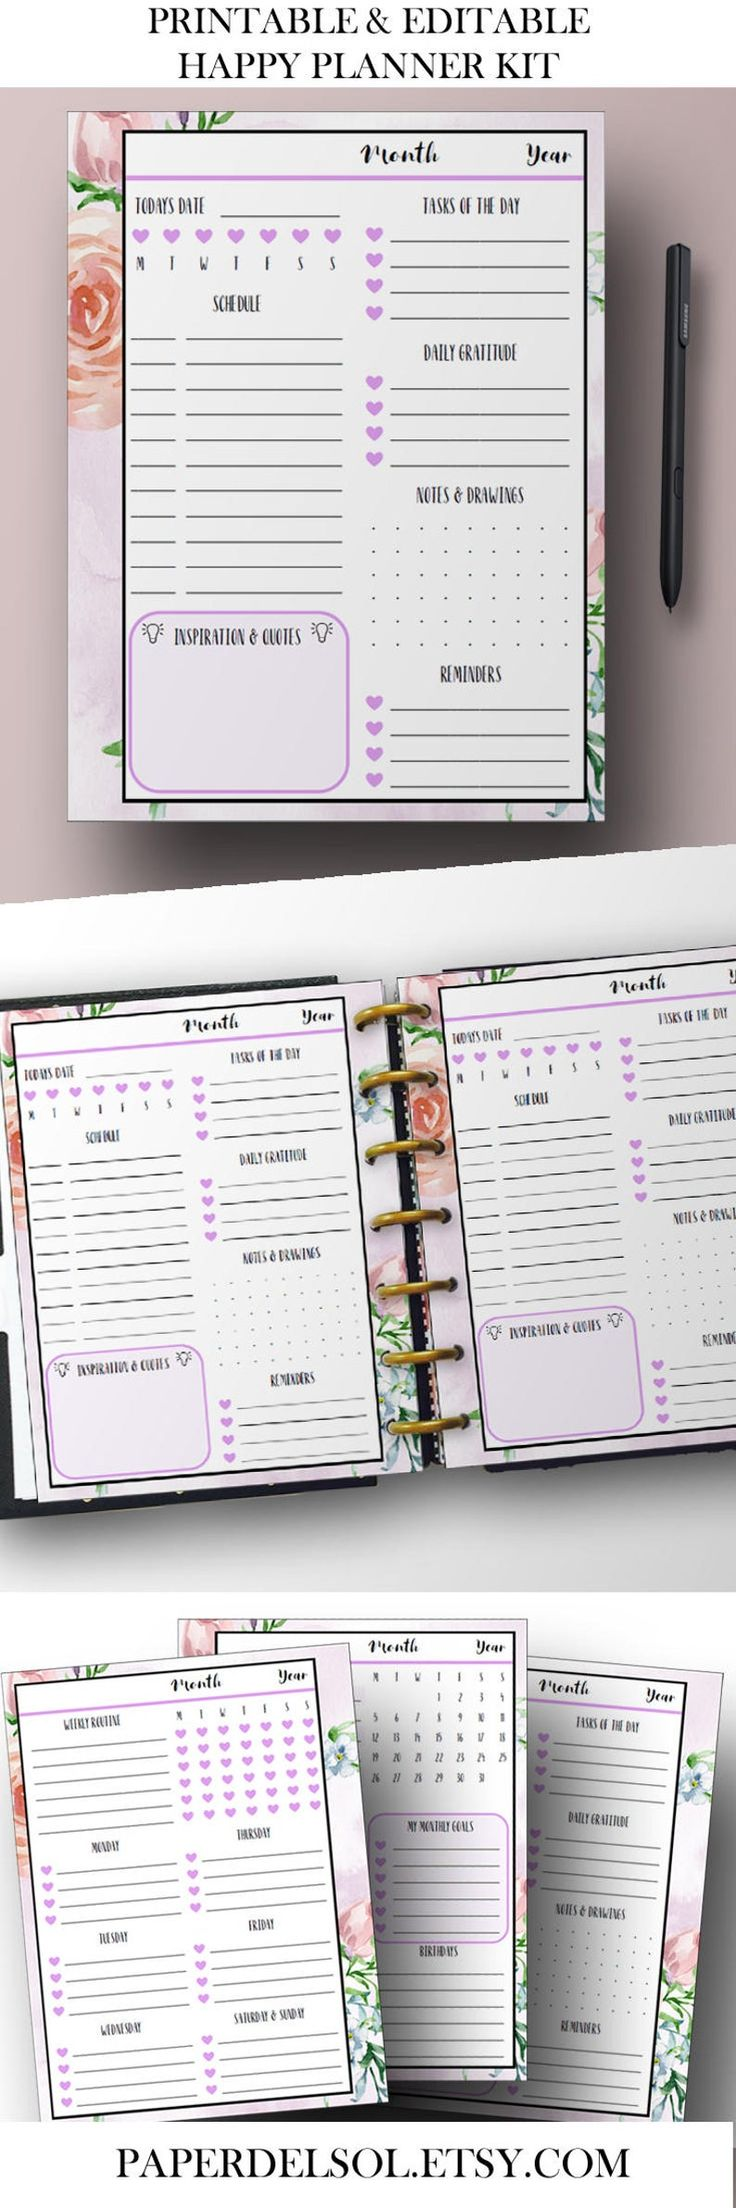 Happy Planner Printable, Happy Planner Inserts, Weekly Planner Printables, Daily Planner Pages, Weekly Printable, 7 x 9, Instant Download